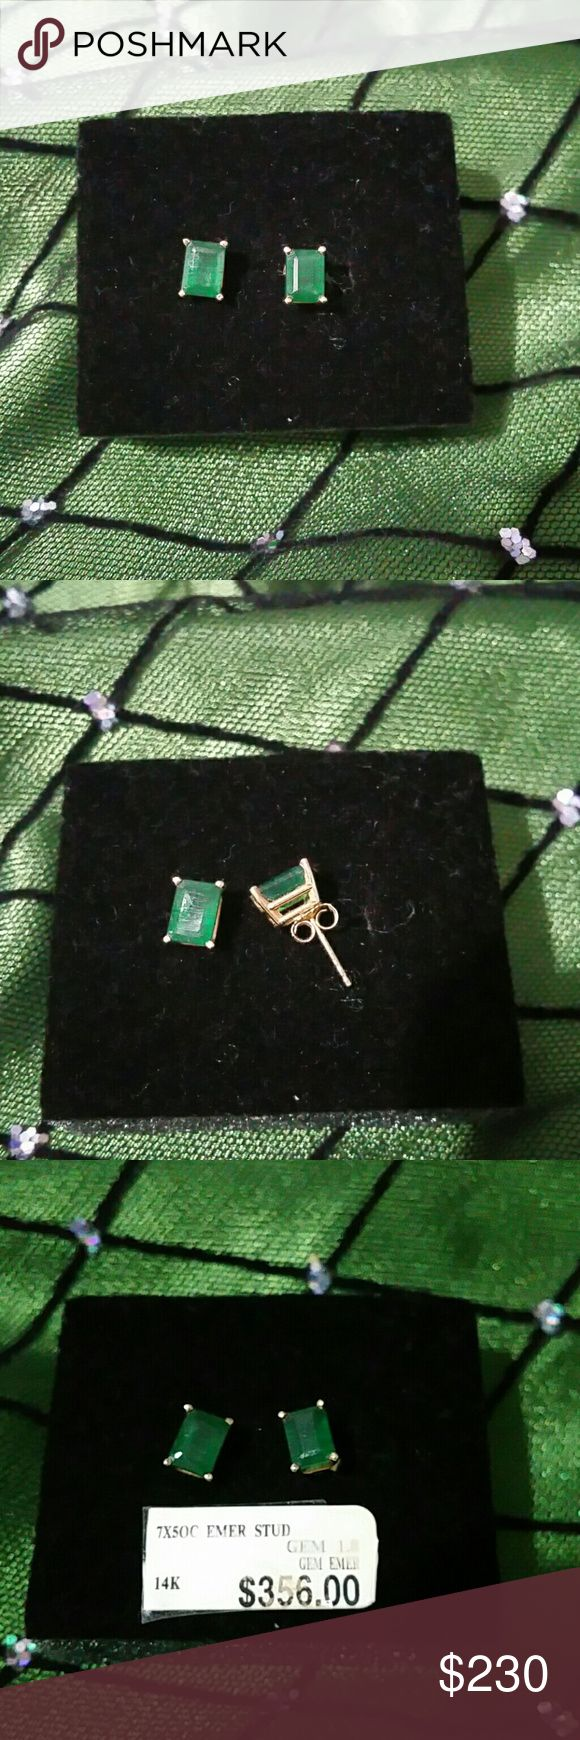 EMERALD EARRINGS Beautiful Emerald cut Emerald earrings!! 14 k.  Worn twice.  Beautiful!  MATCHES the NECKLACE and RING I have listed! Jewelry Earrings